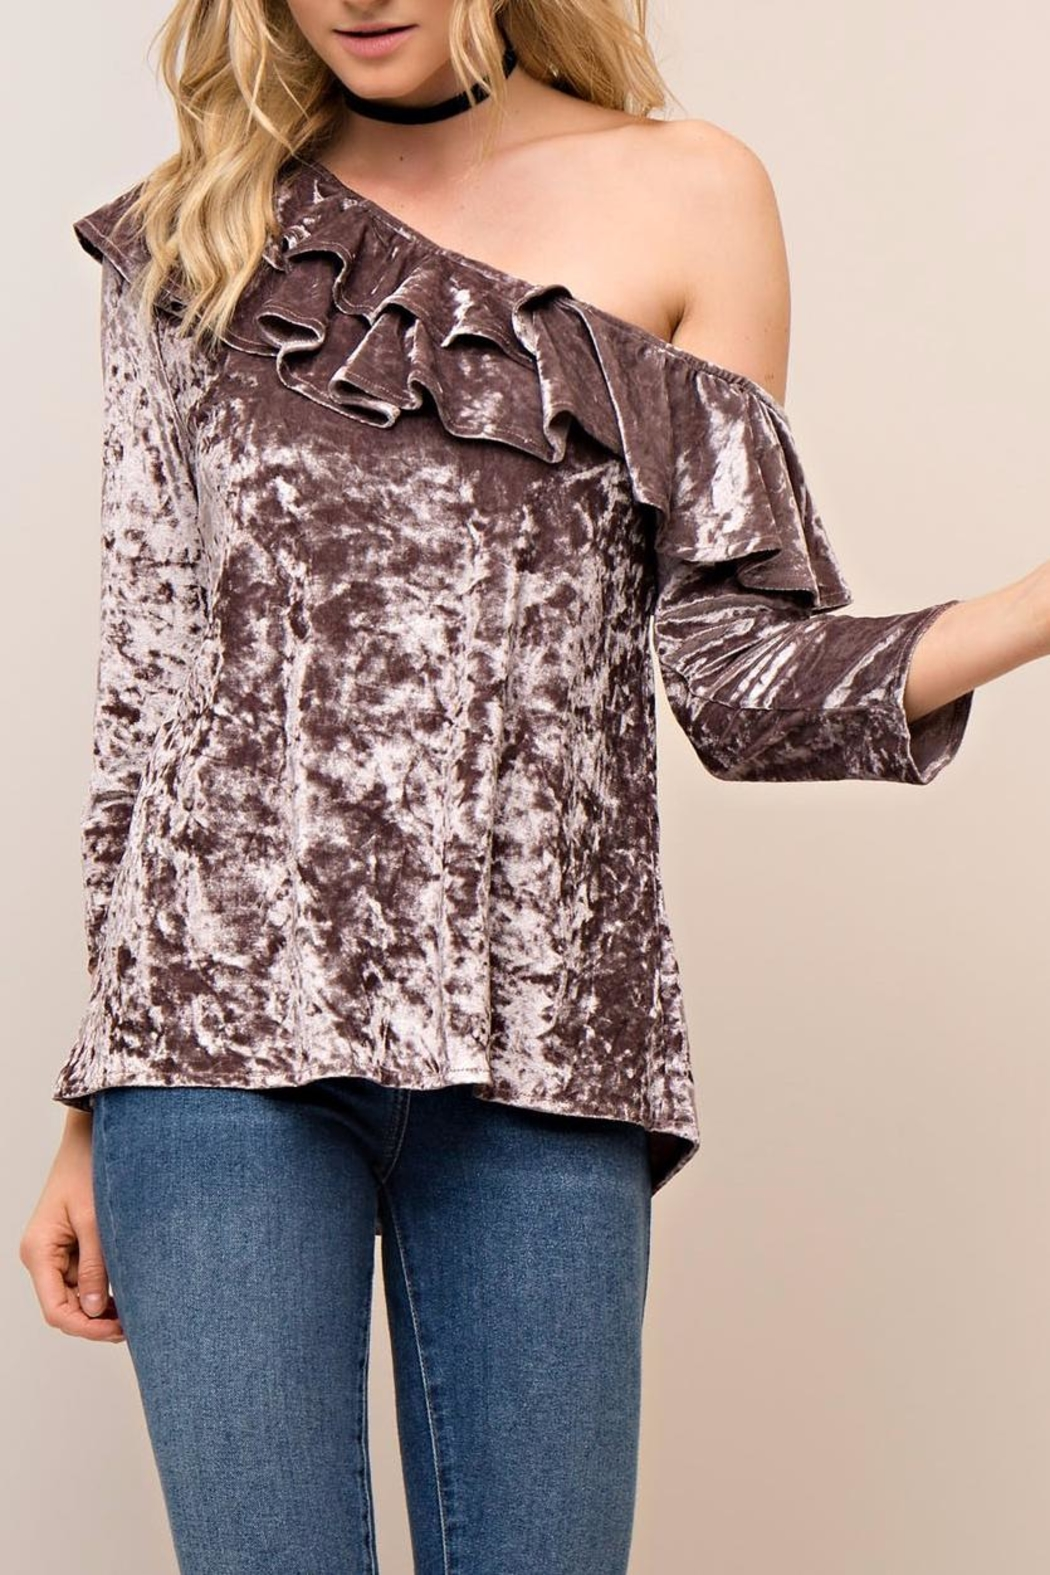 People Outfitter Aristide Velvet Top - Side Cropped Image